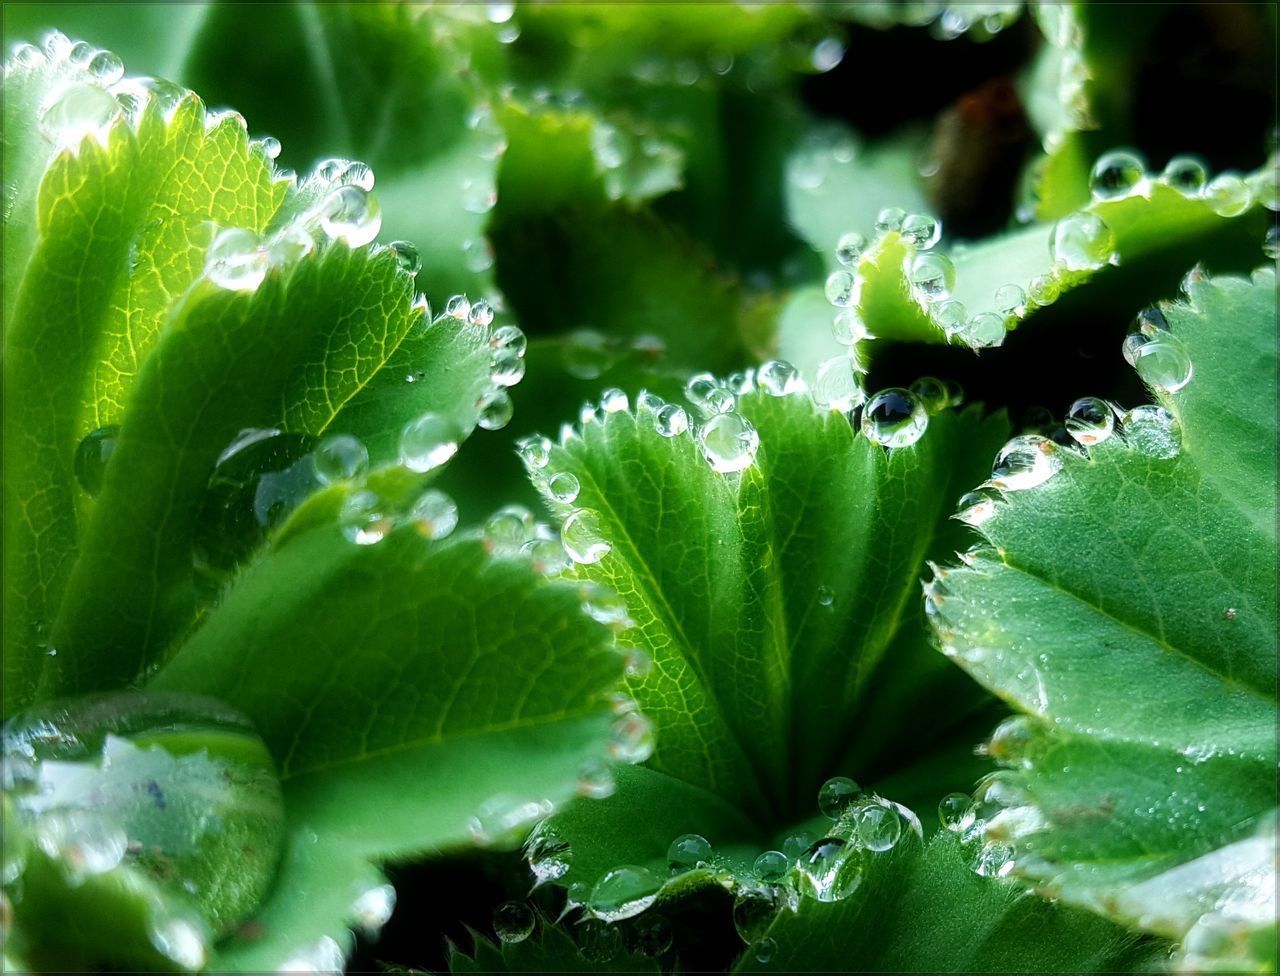 Alchemilla Monticola Beauty In Nature Bud Close-up Drop Flower Focus On Foreground Fragility Freshness Garden Photography Green Green Color Growing Growth Leaf Leaf Vein Nature No People Plant Selective Focus Urban Spring Fever Water Wet